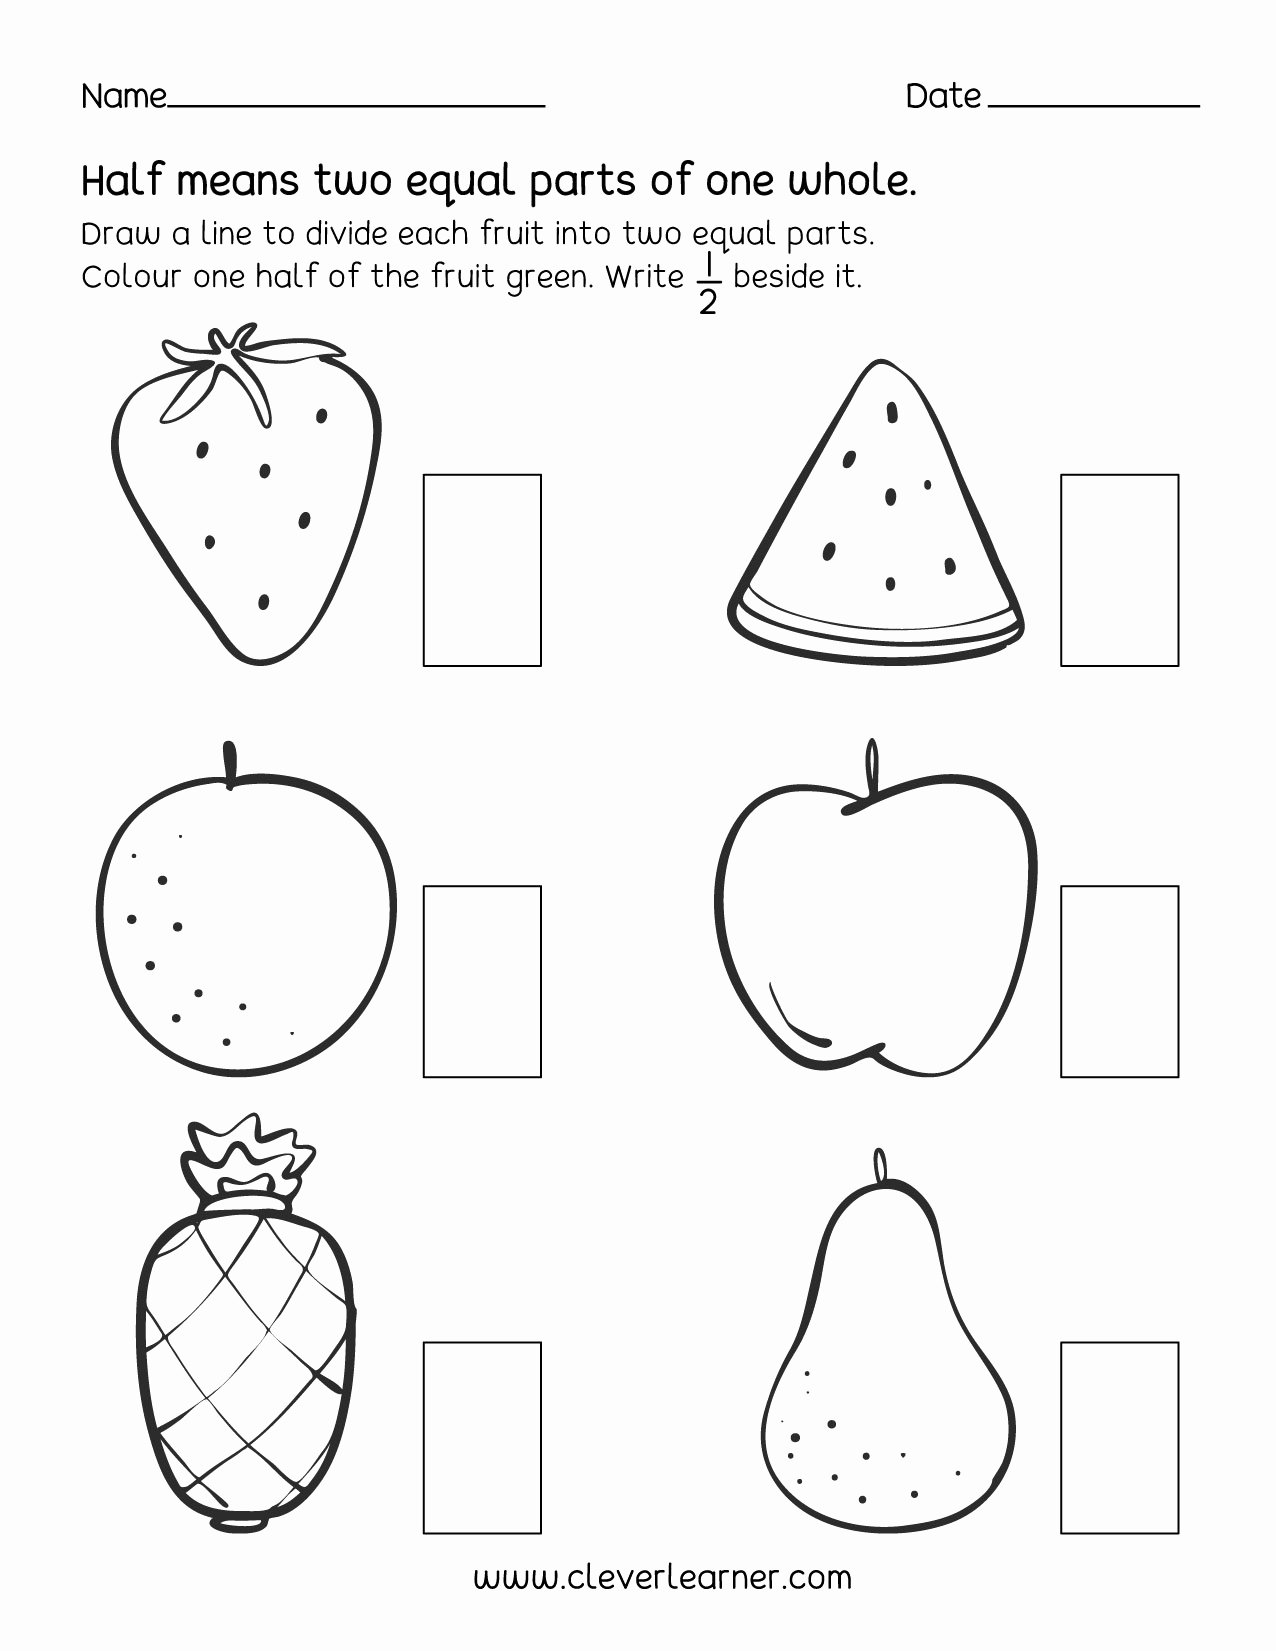 Quarter Worksheets for Preschoolers Printable Fun Activity On Fractions Half 1 2 Worksheets for Children